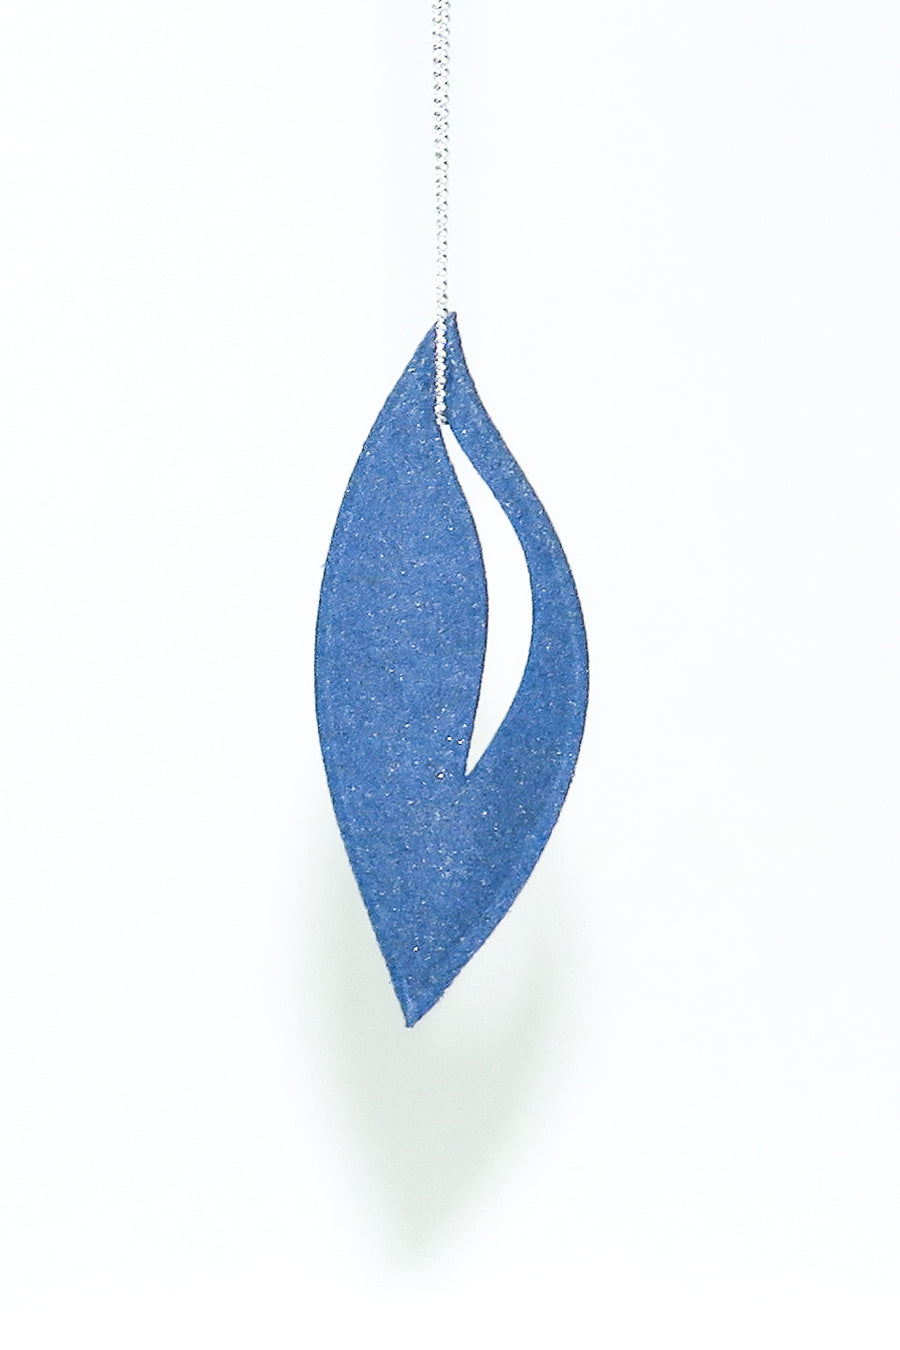 3D Printed Sapphire Blue Olive Pendant on a Sterling Silver Chain